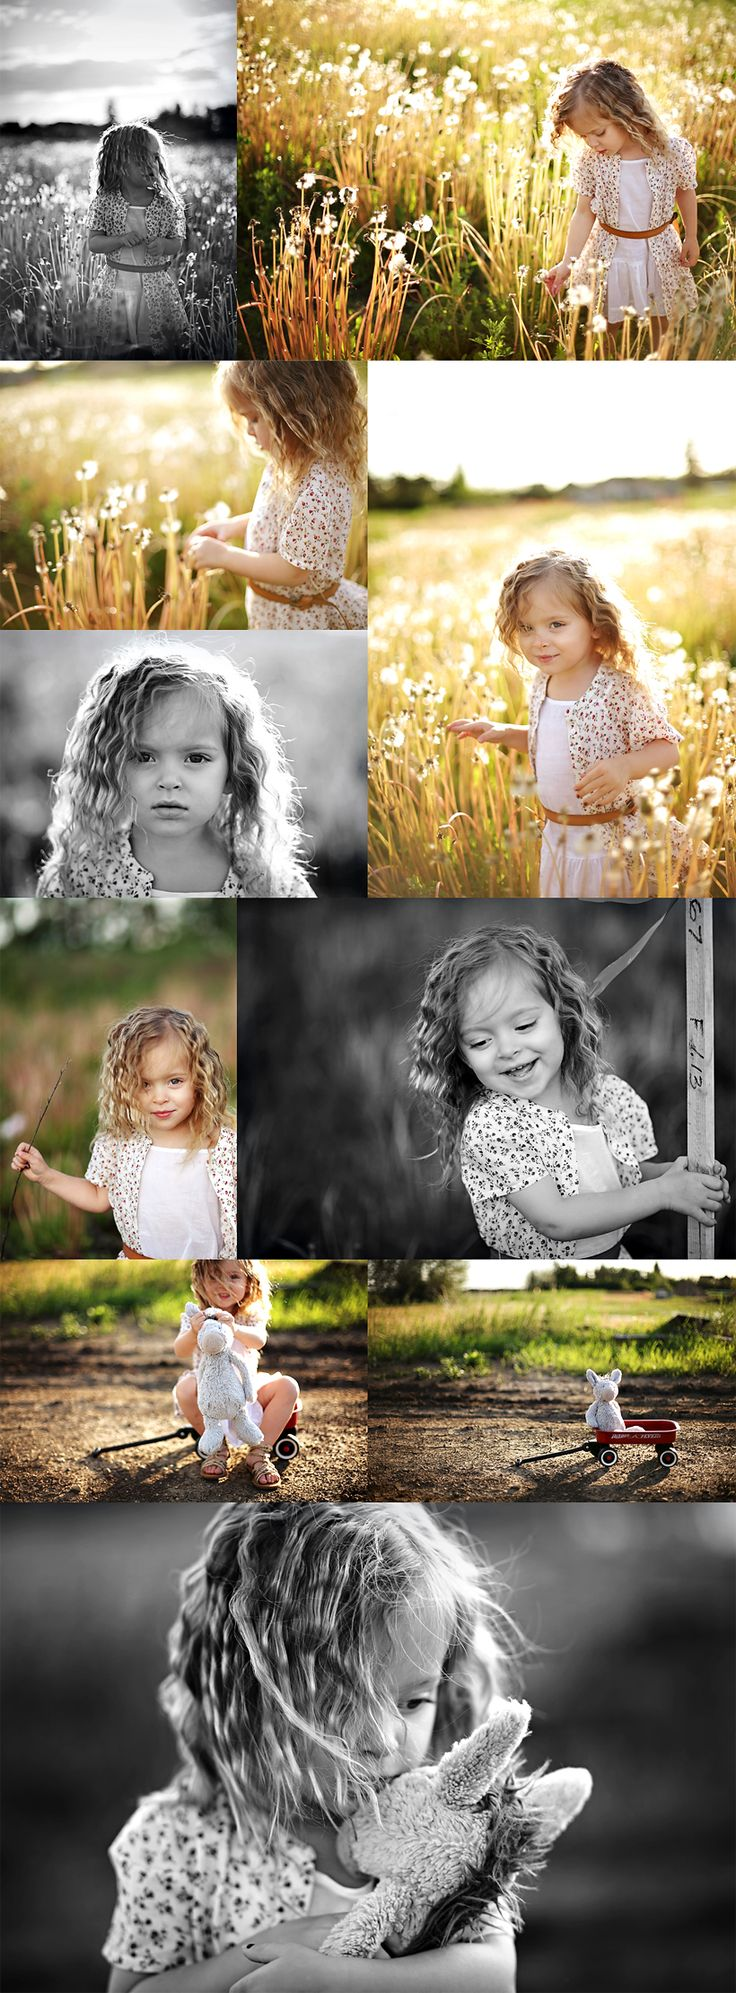 Rustic, little girls photos. I am in love, need to get pics done like this if I have a baby girl one day.